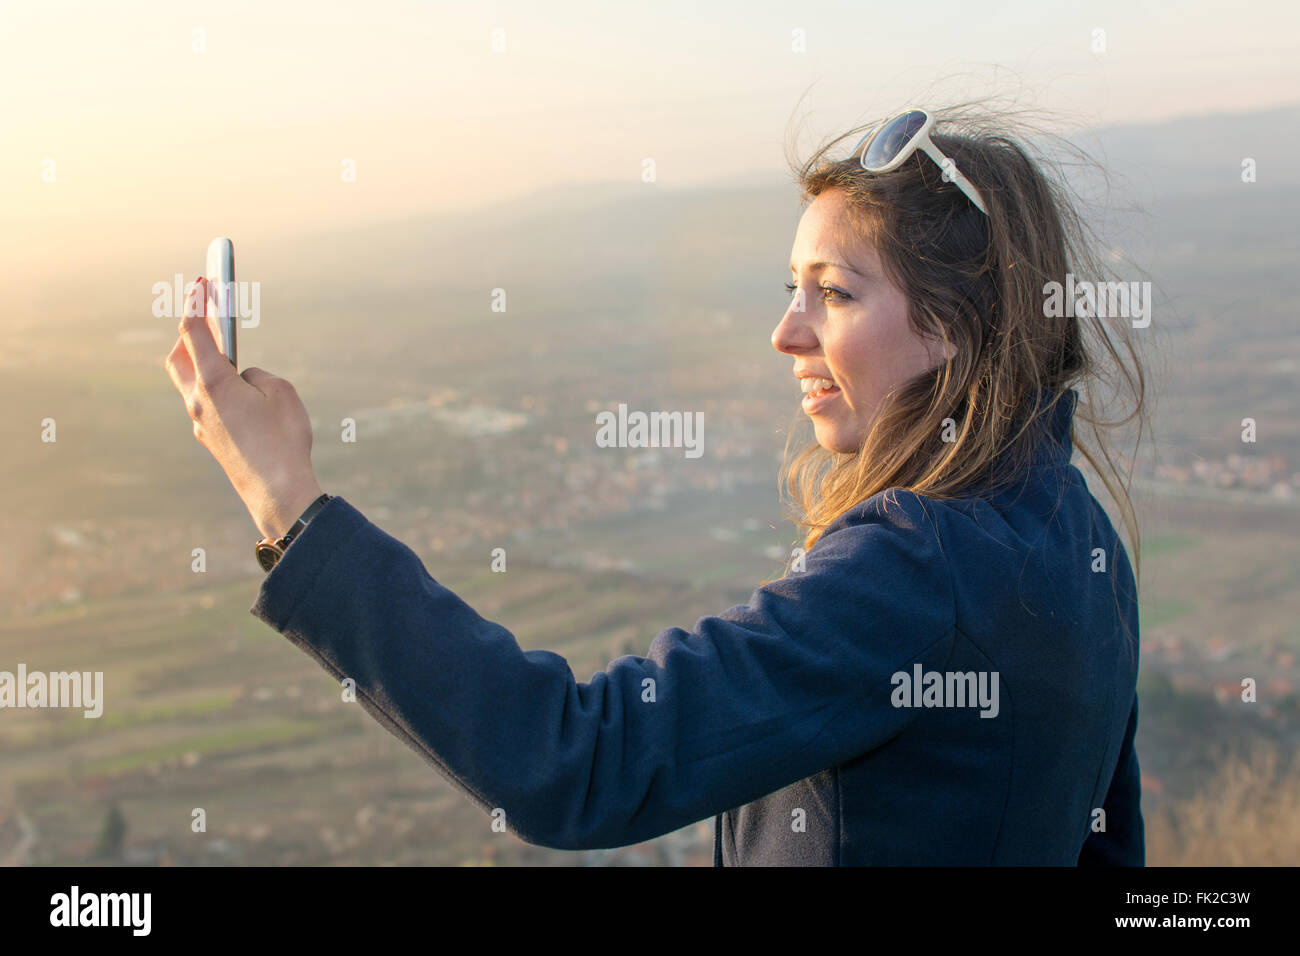 Girl taking a selfie on a hiking trip at sunset - Stock Image